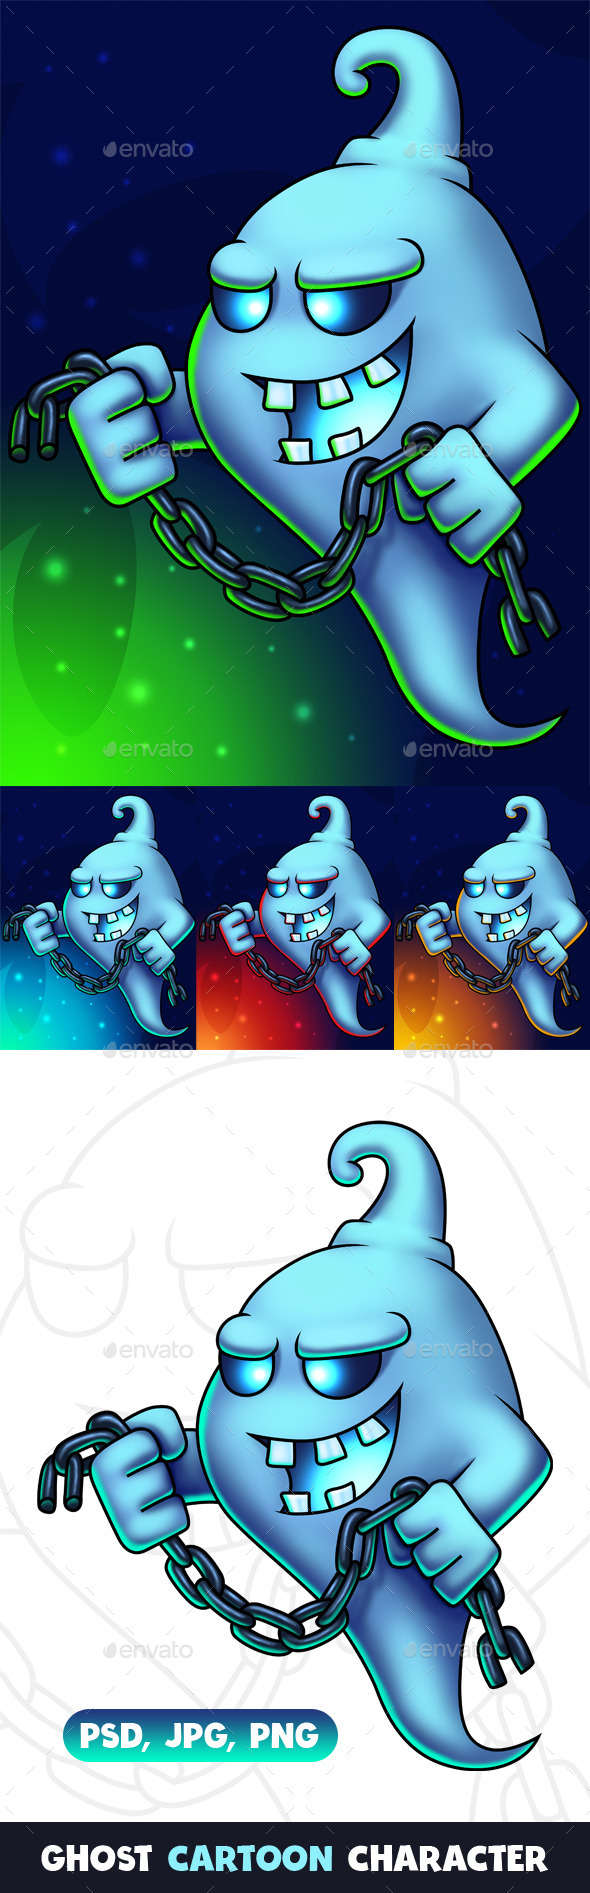 Ghost Cartoon Character Digital Painting - Characters Illustrations